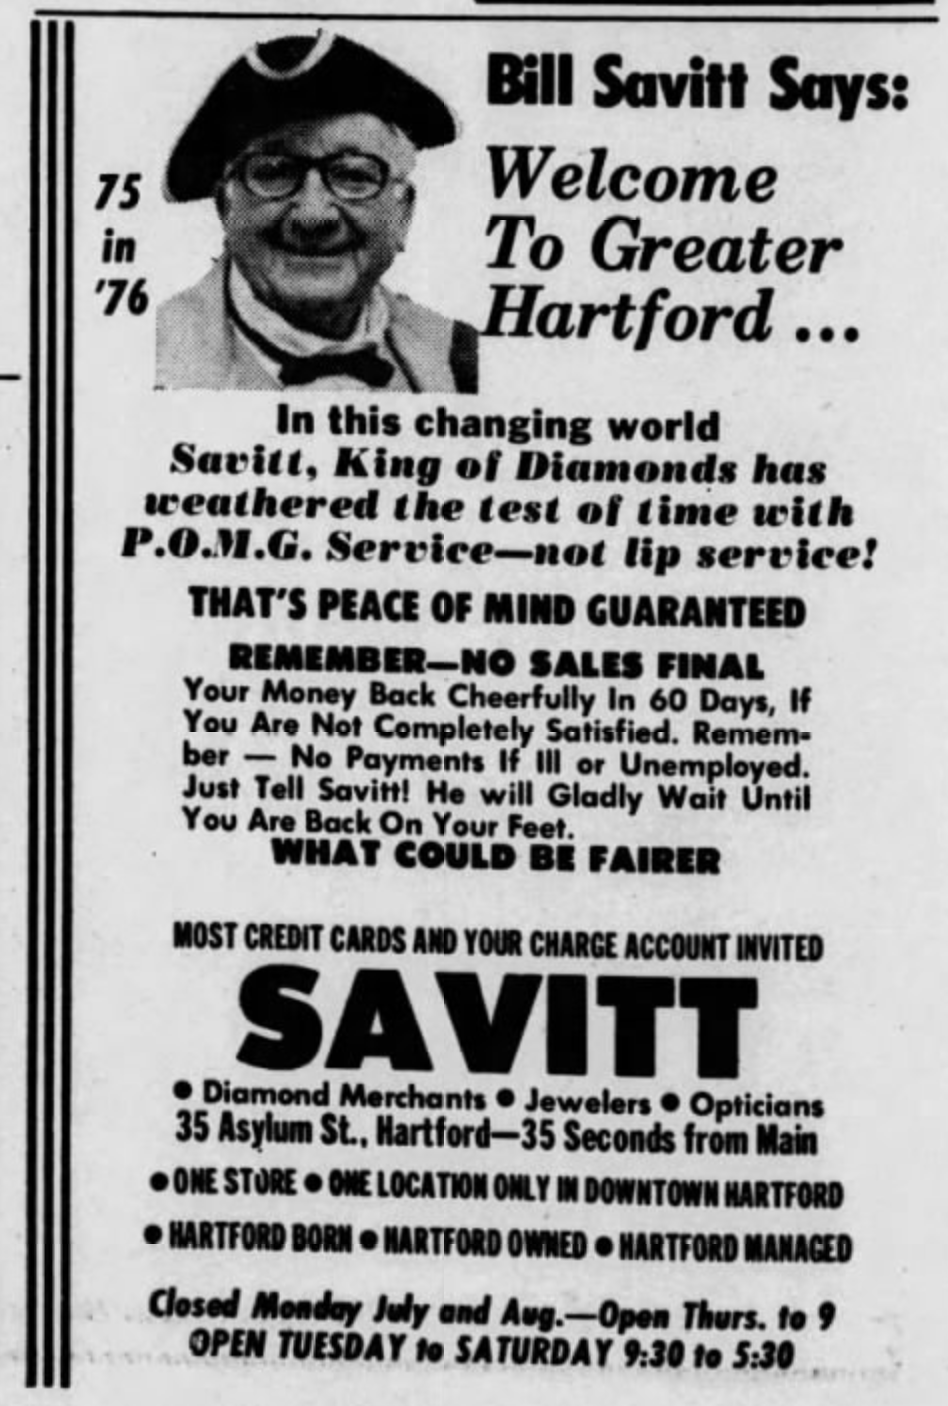 Savitt Jewelers advertisement, 1976.